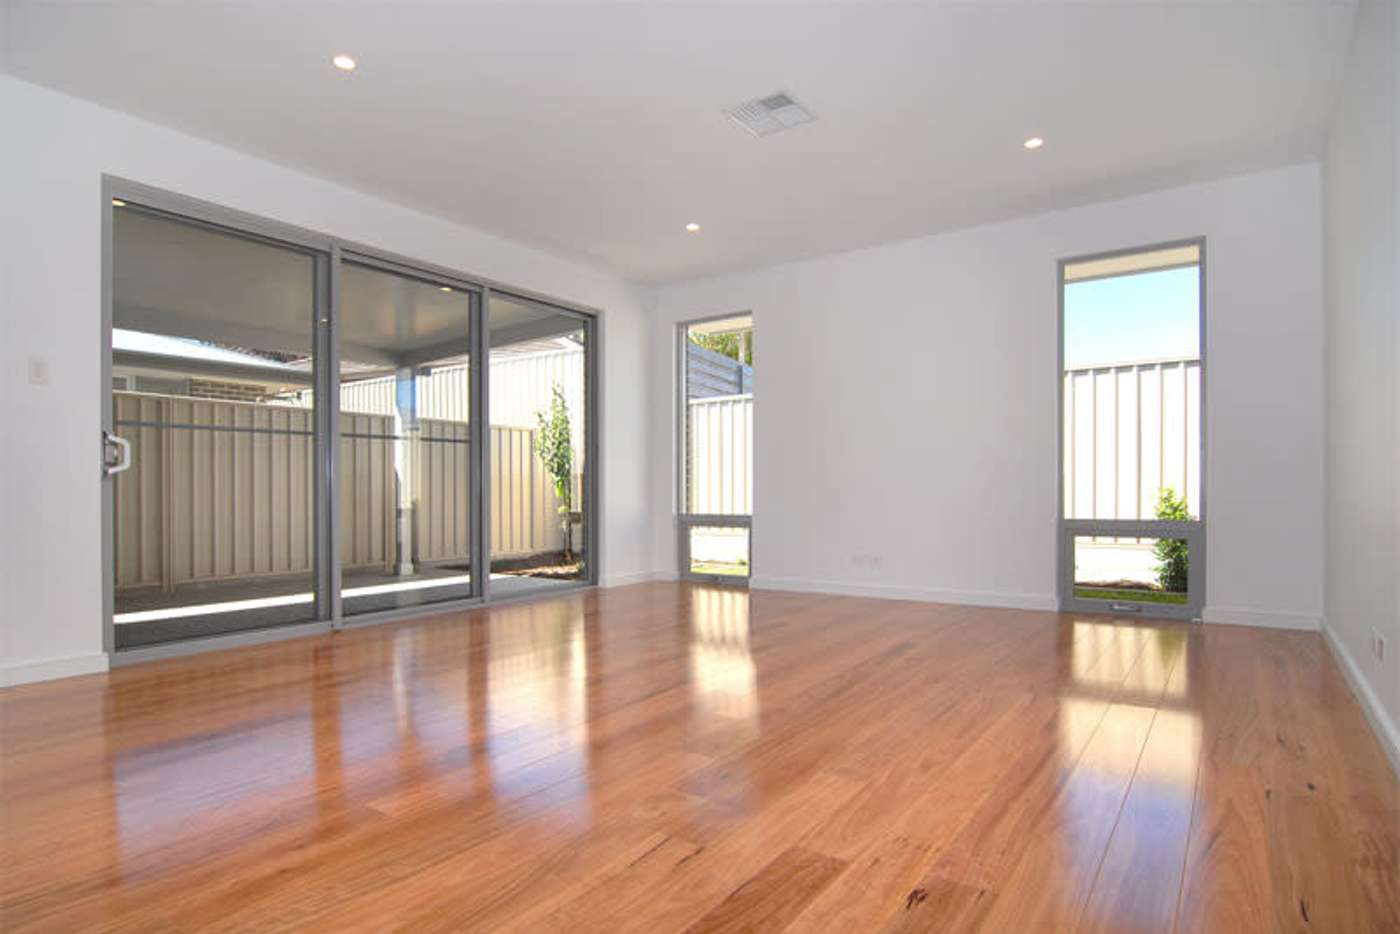 Seventh view of Homely house listing, Res.3 / 25 Battams Road, Royston Park SA 5070